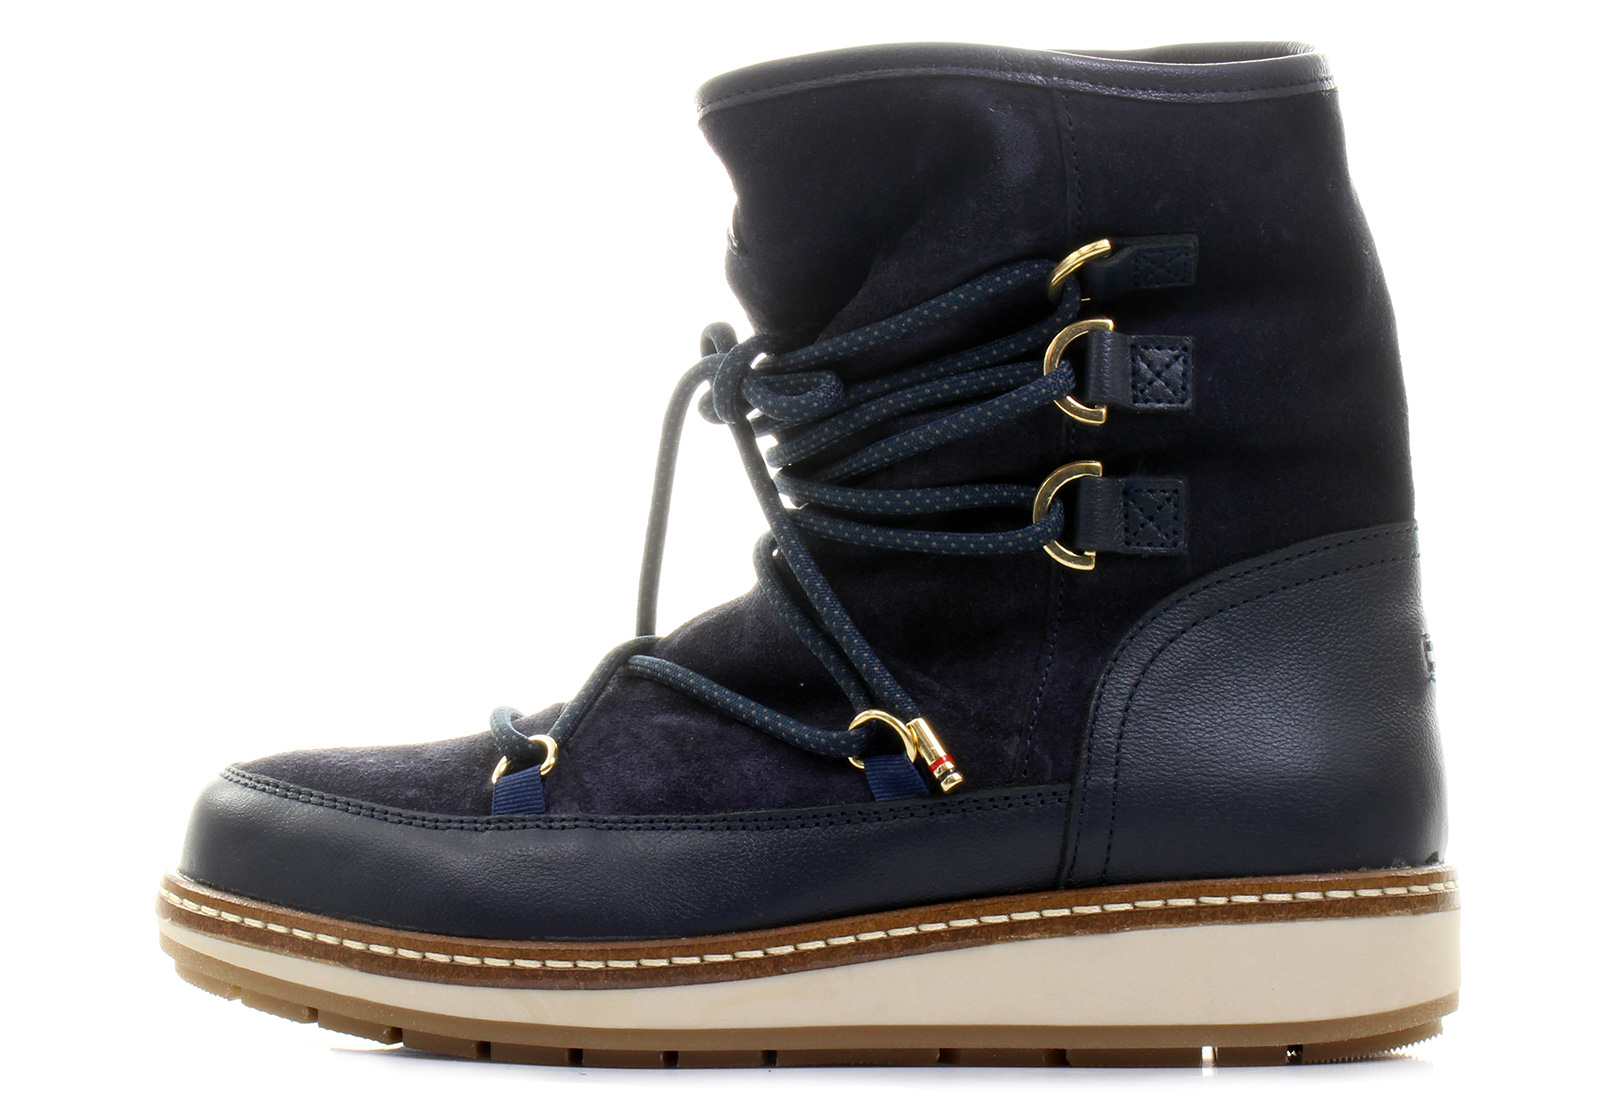 Tommy Hilfiger Boots - Wooli 6c1w - 15F-0004-403 - Online shop for sneakers, shoes and boots